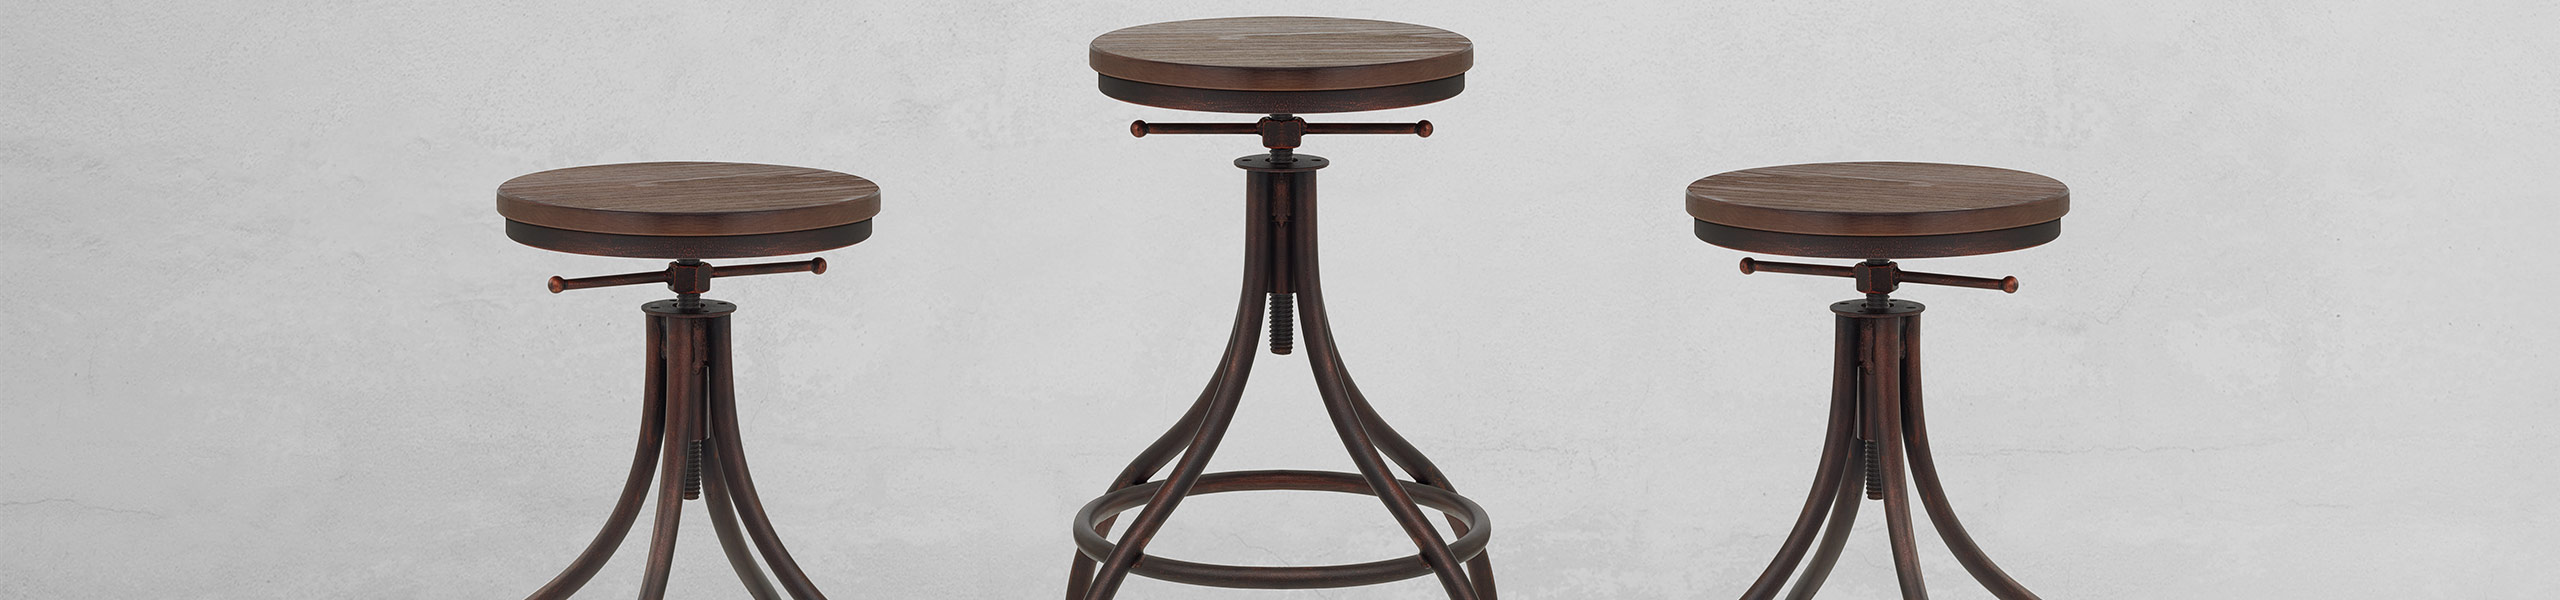 Arc Stool Antique Copper Video Banner